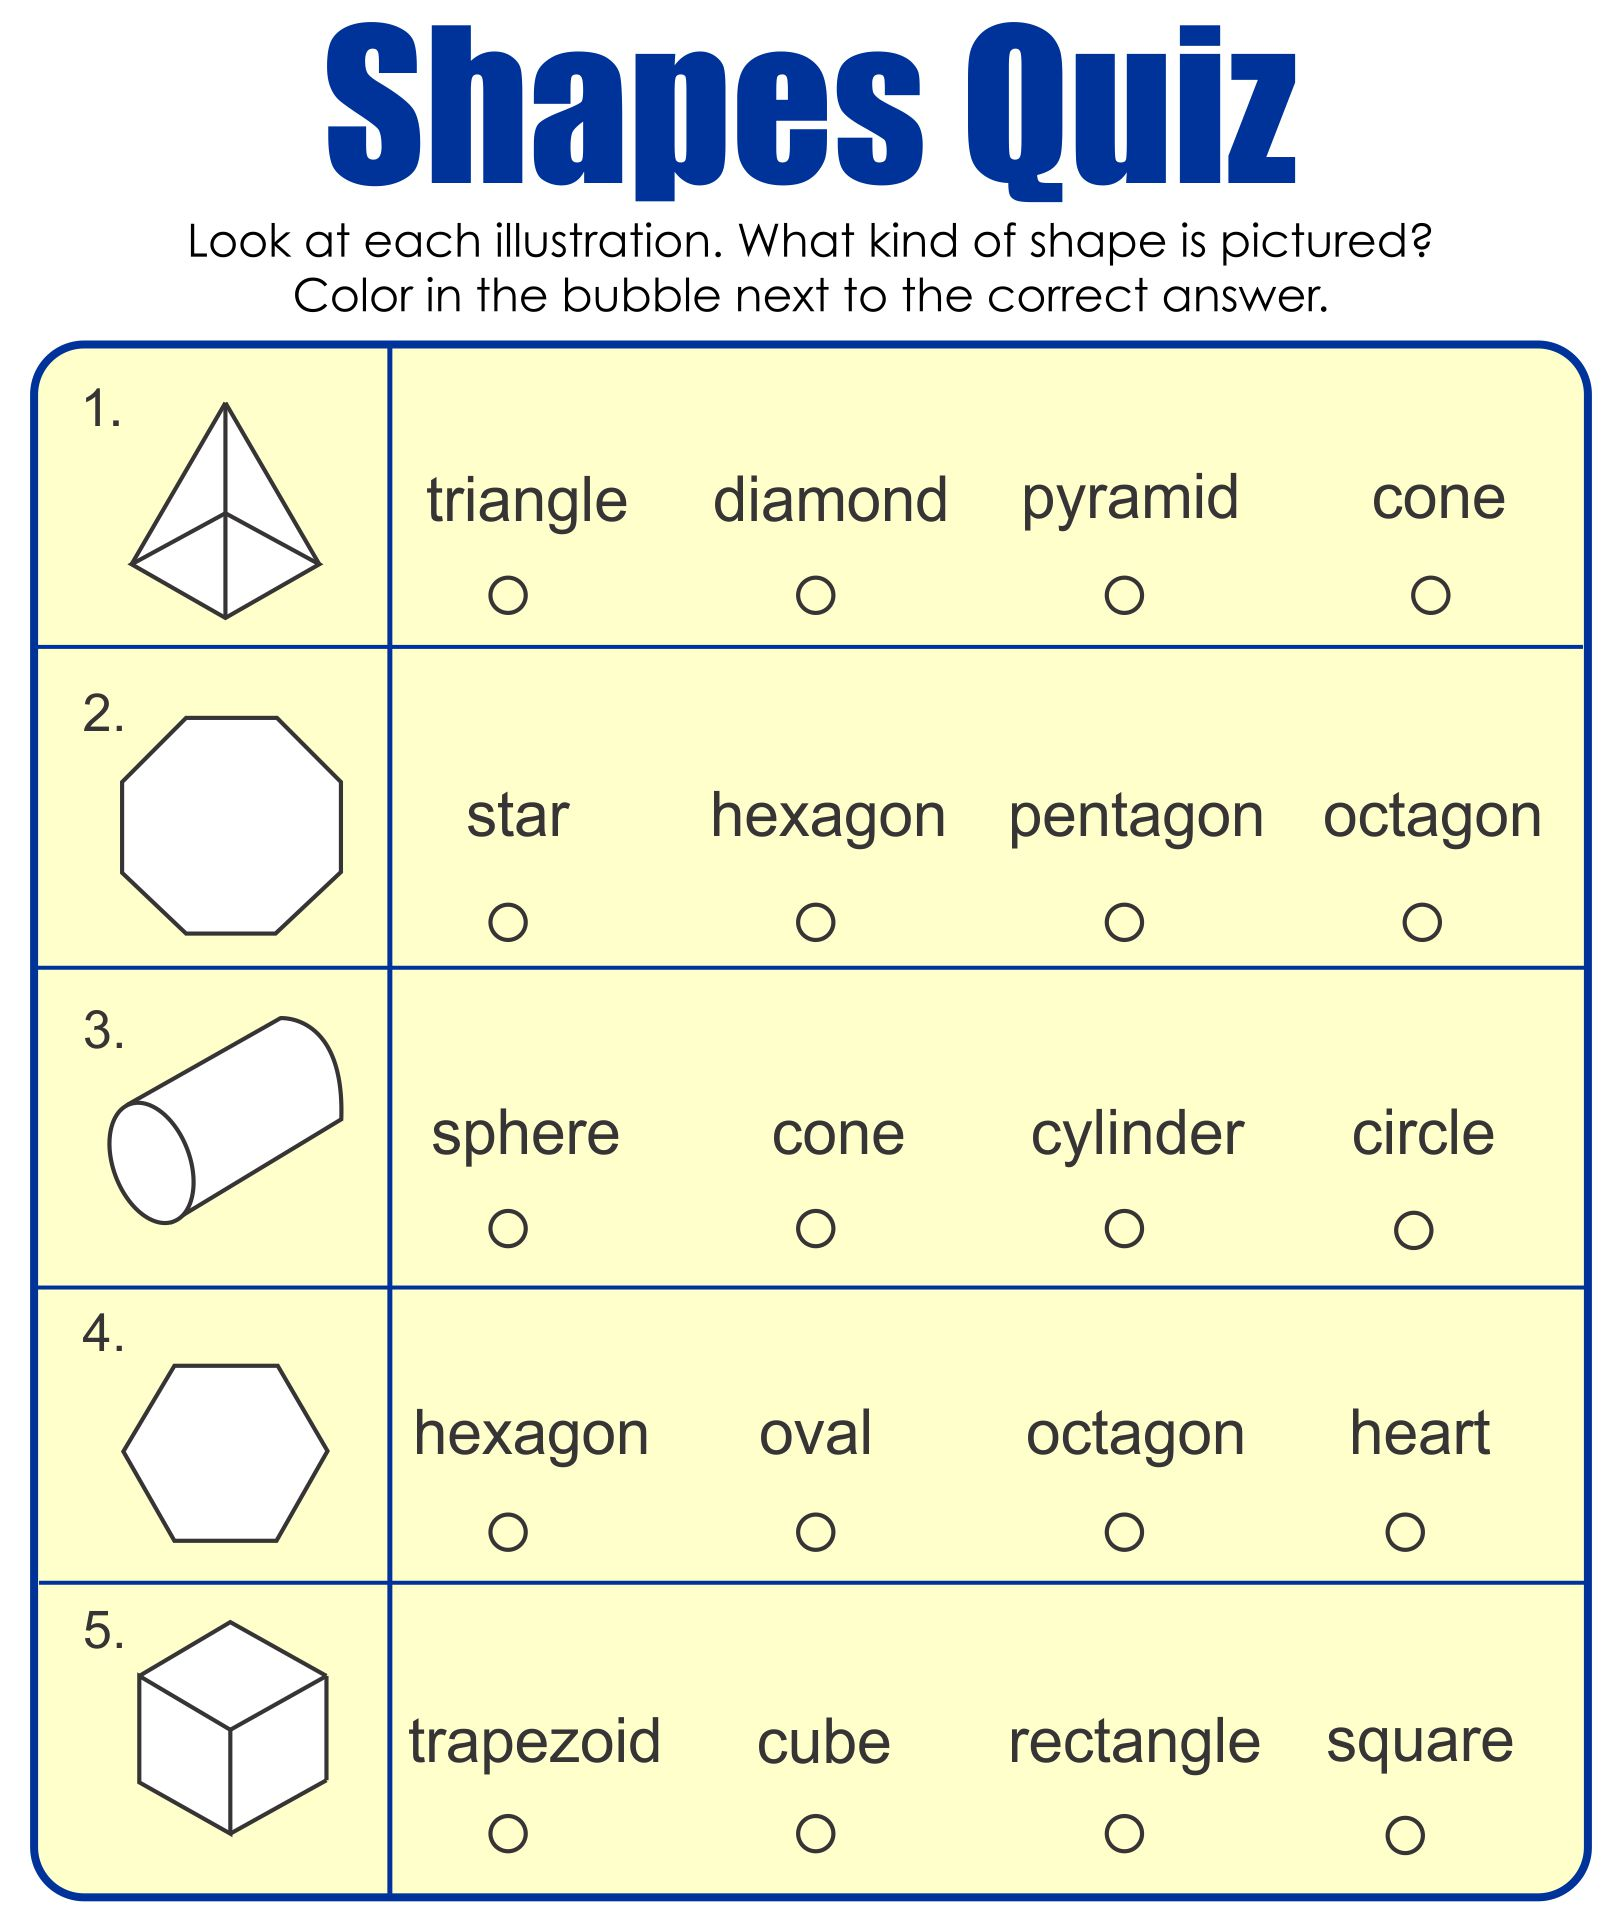 Printables 3d Shapes Worksheets For Kindergarten 3d shape worksheet kindergarten intrepidpath 4 best images of shapes worksheets printables kindergarten